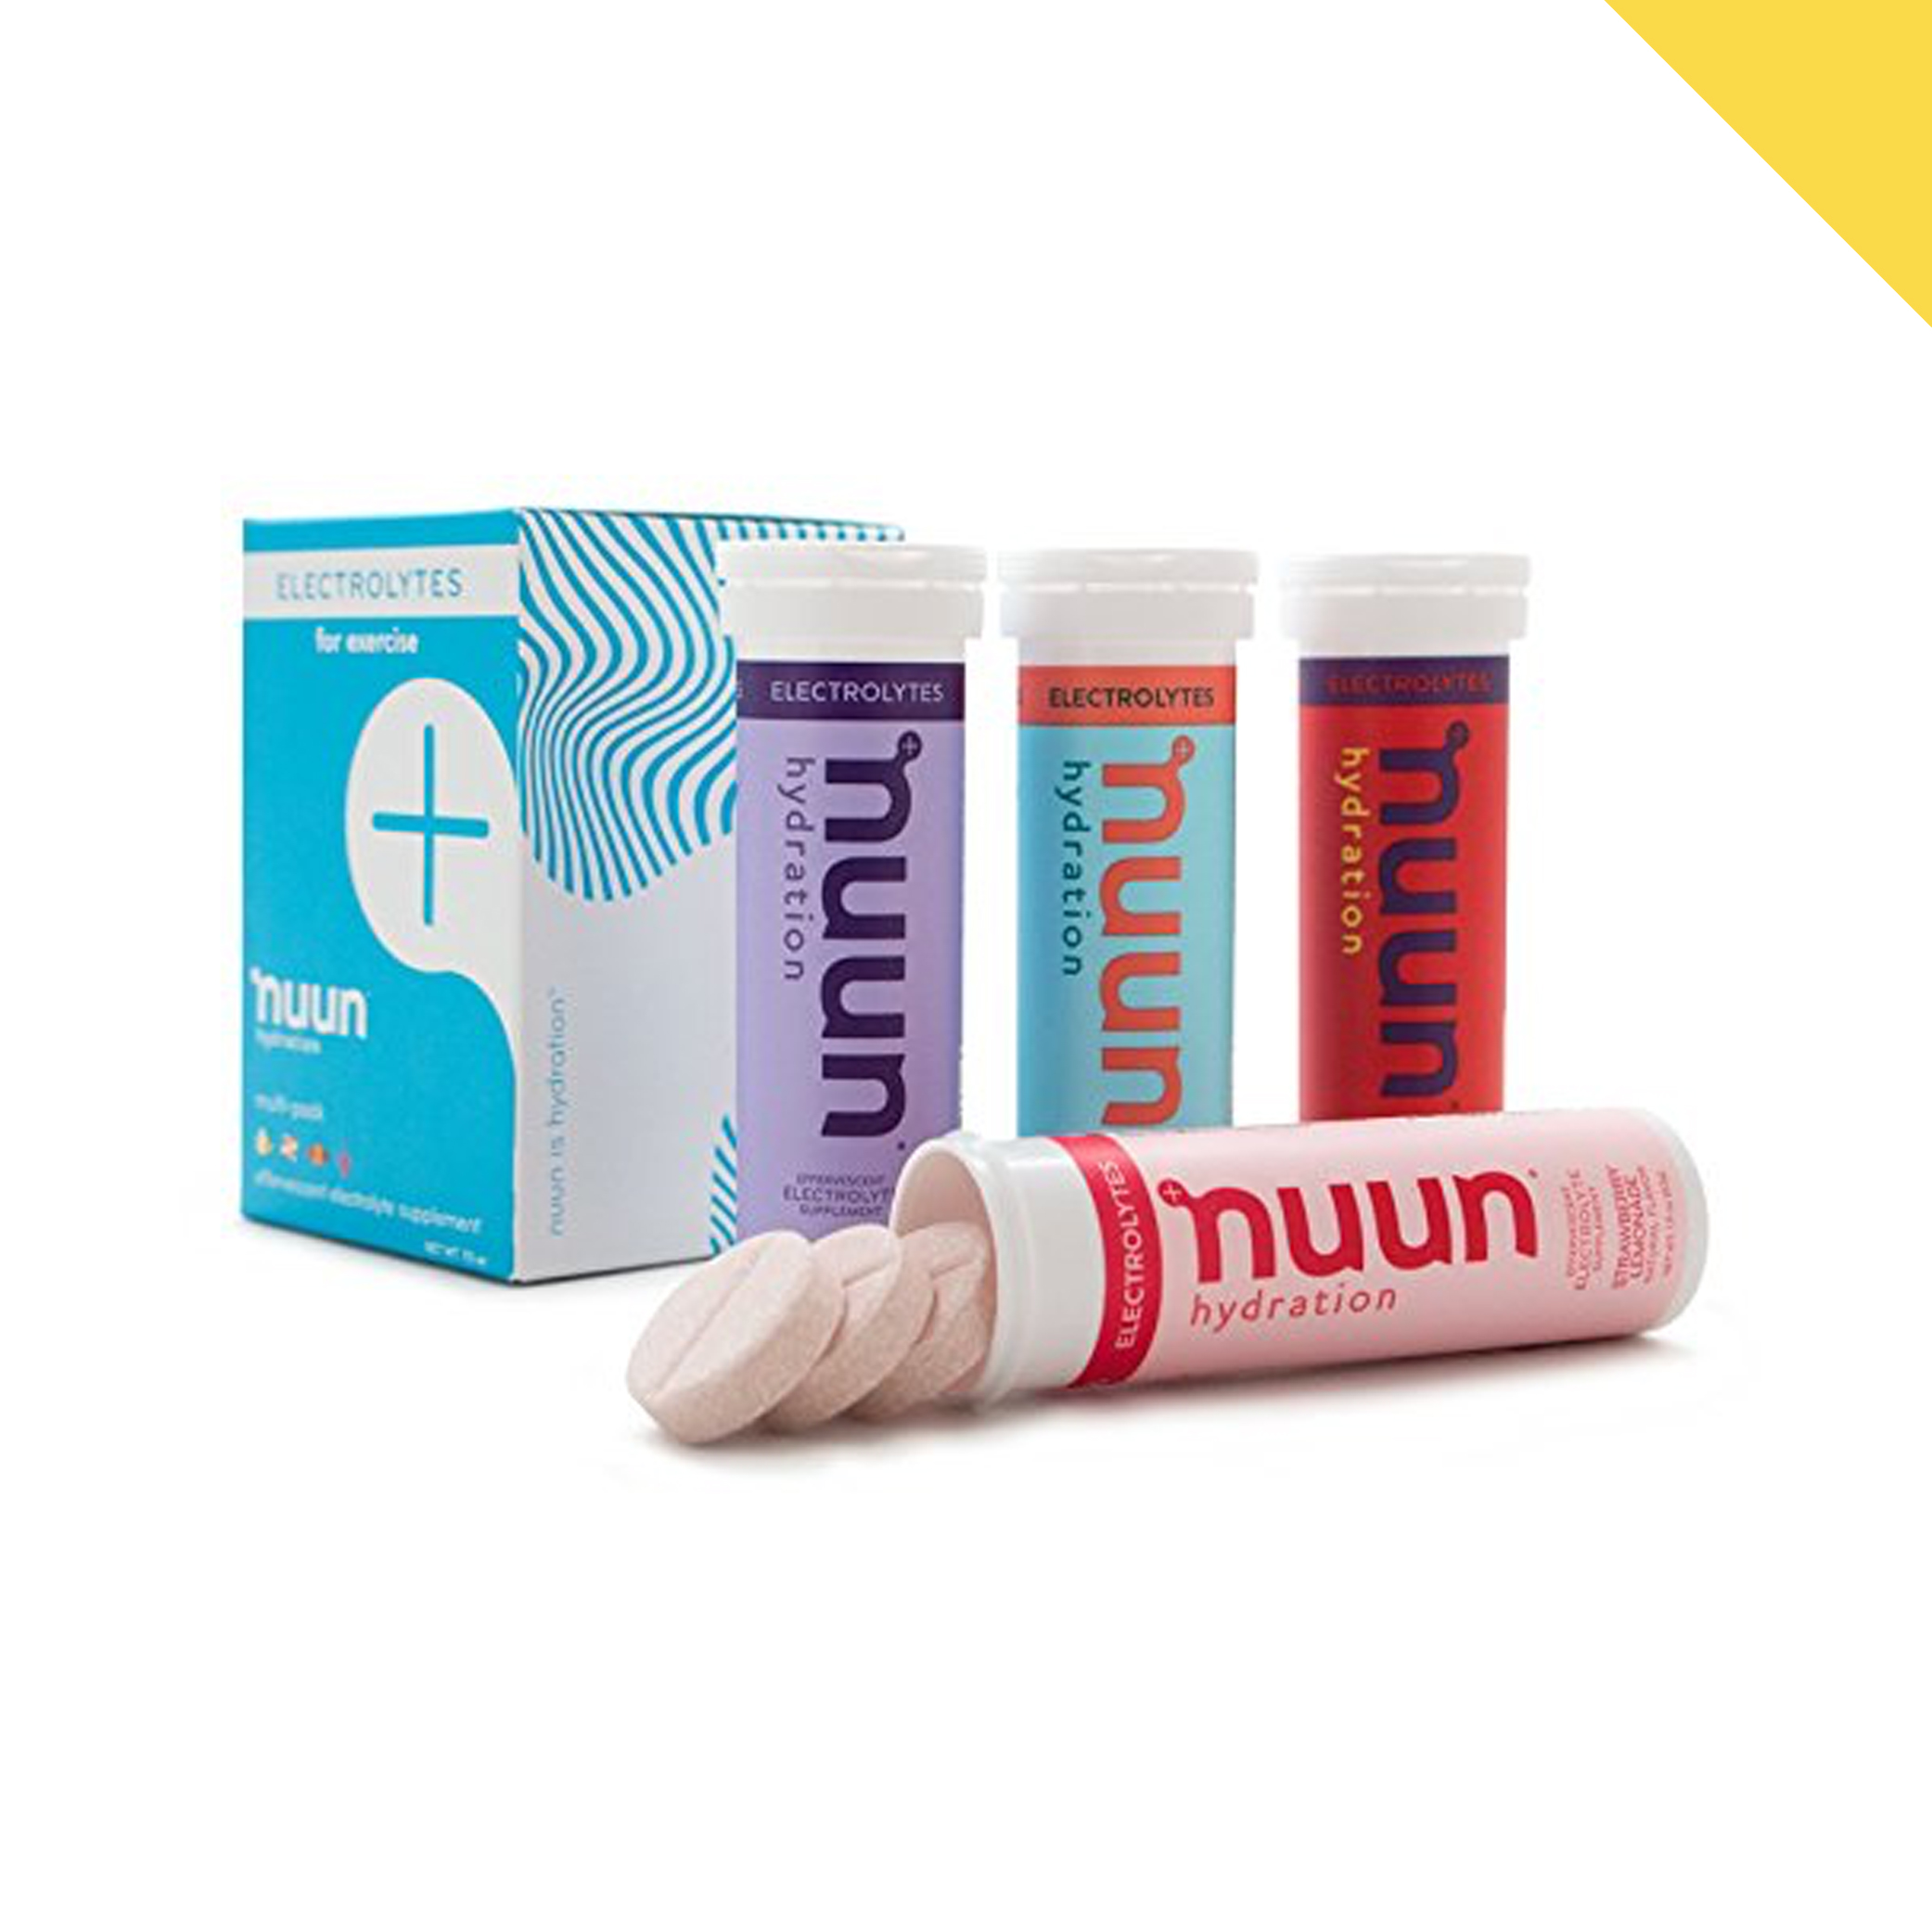 Nuun Hydration: Electrolyte Drink Tablets -